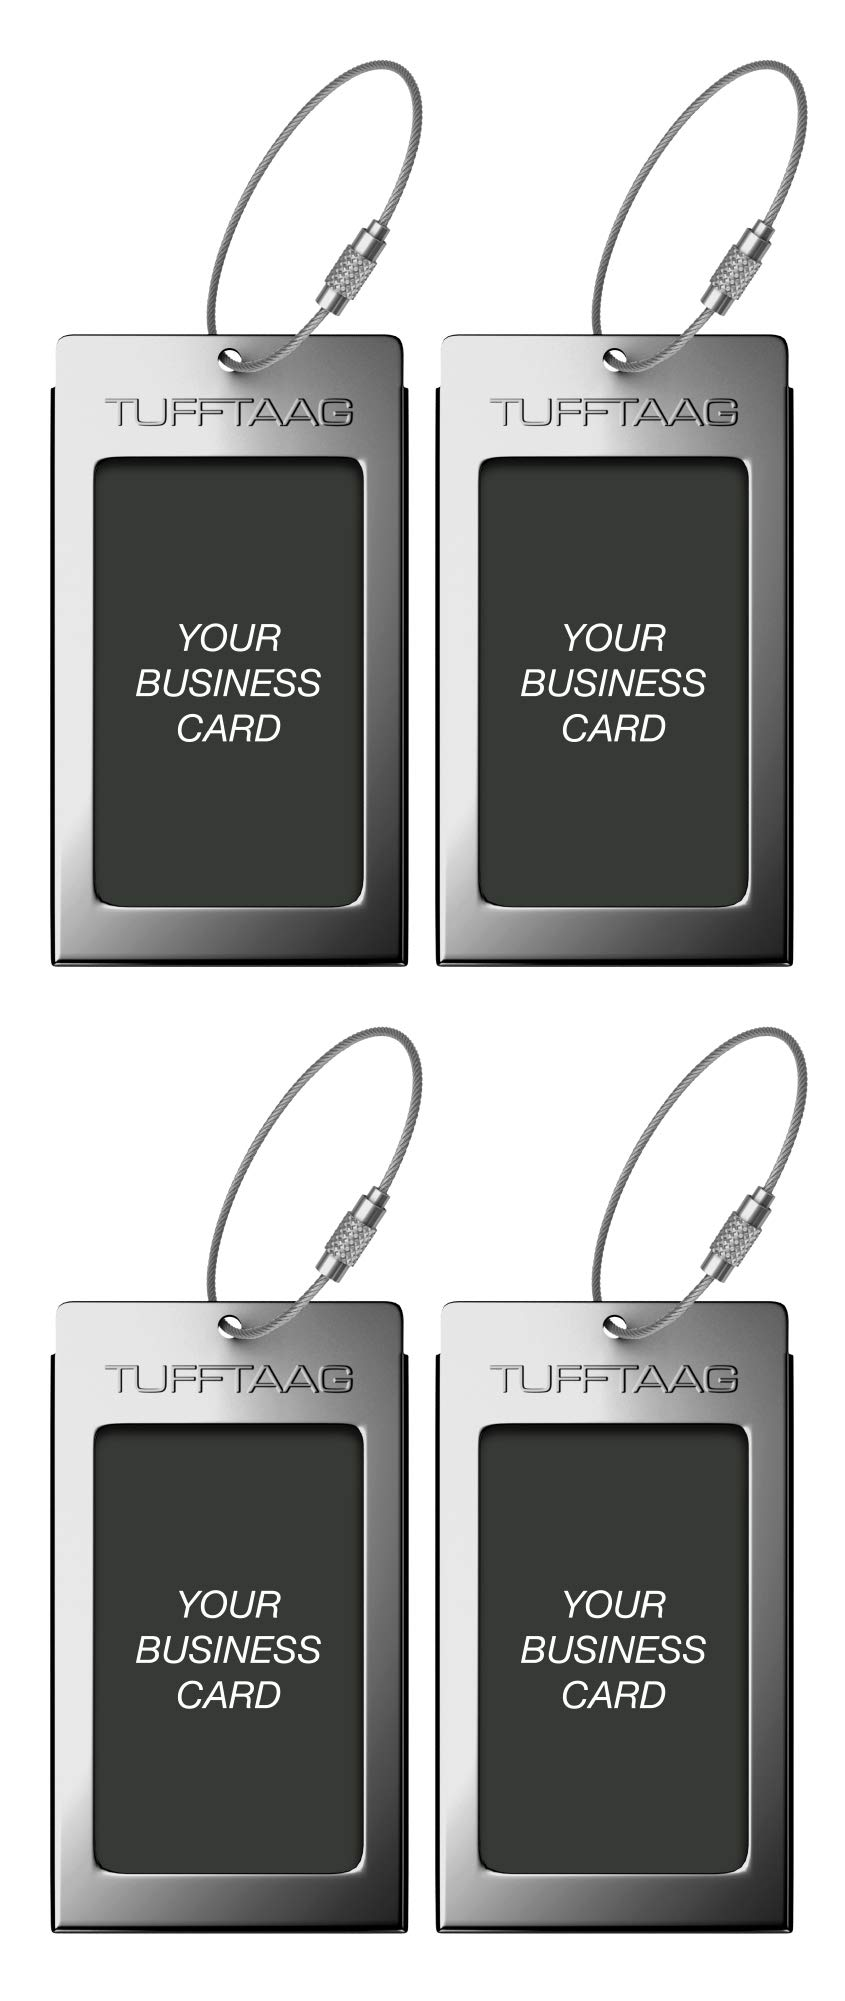 Luggage Tags TUFFTAAG for Business Cards, Metal Suitcase Labels, 4 Pack Bundle (4 Gunmetal) by ProudGuy